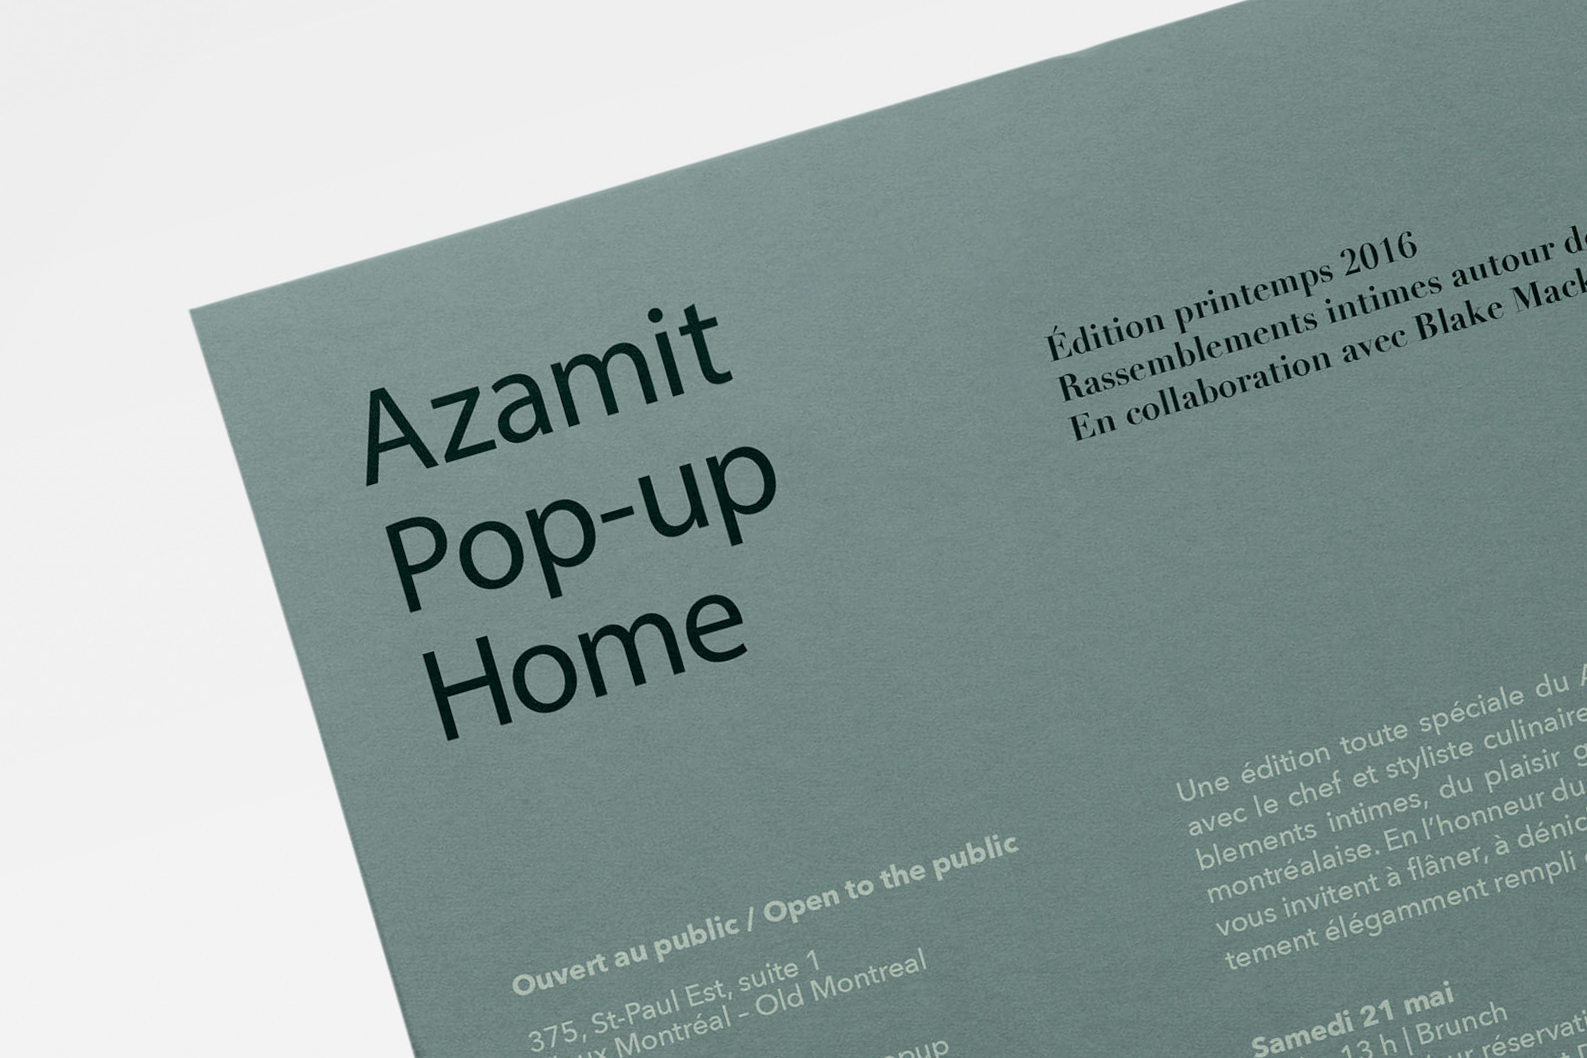 Azamit Pop-Up Home Website and Graphic Design by threefold